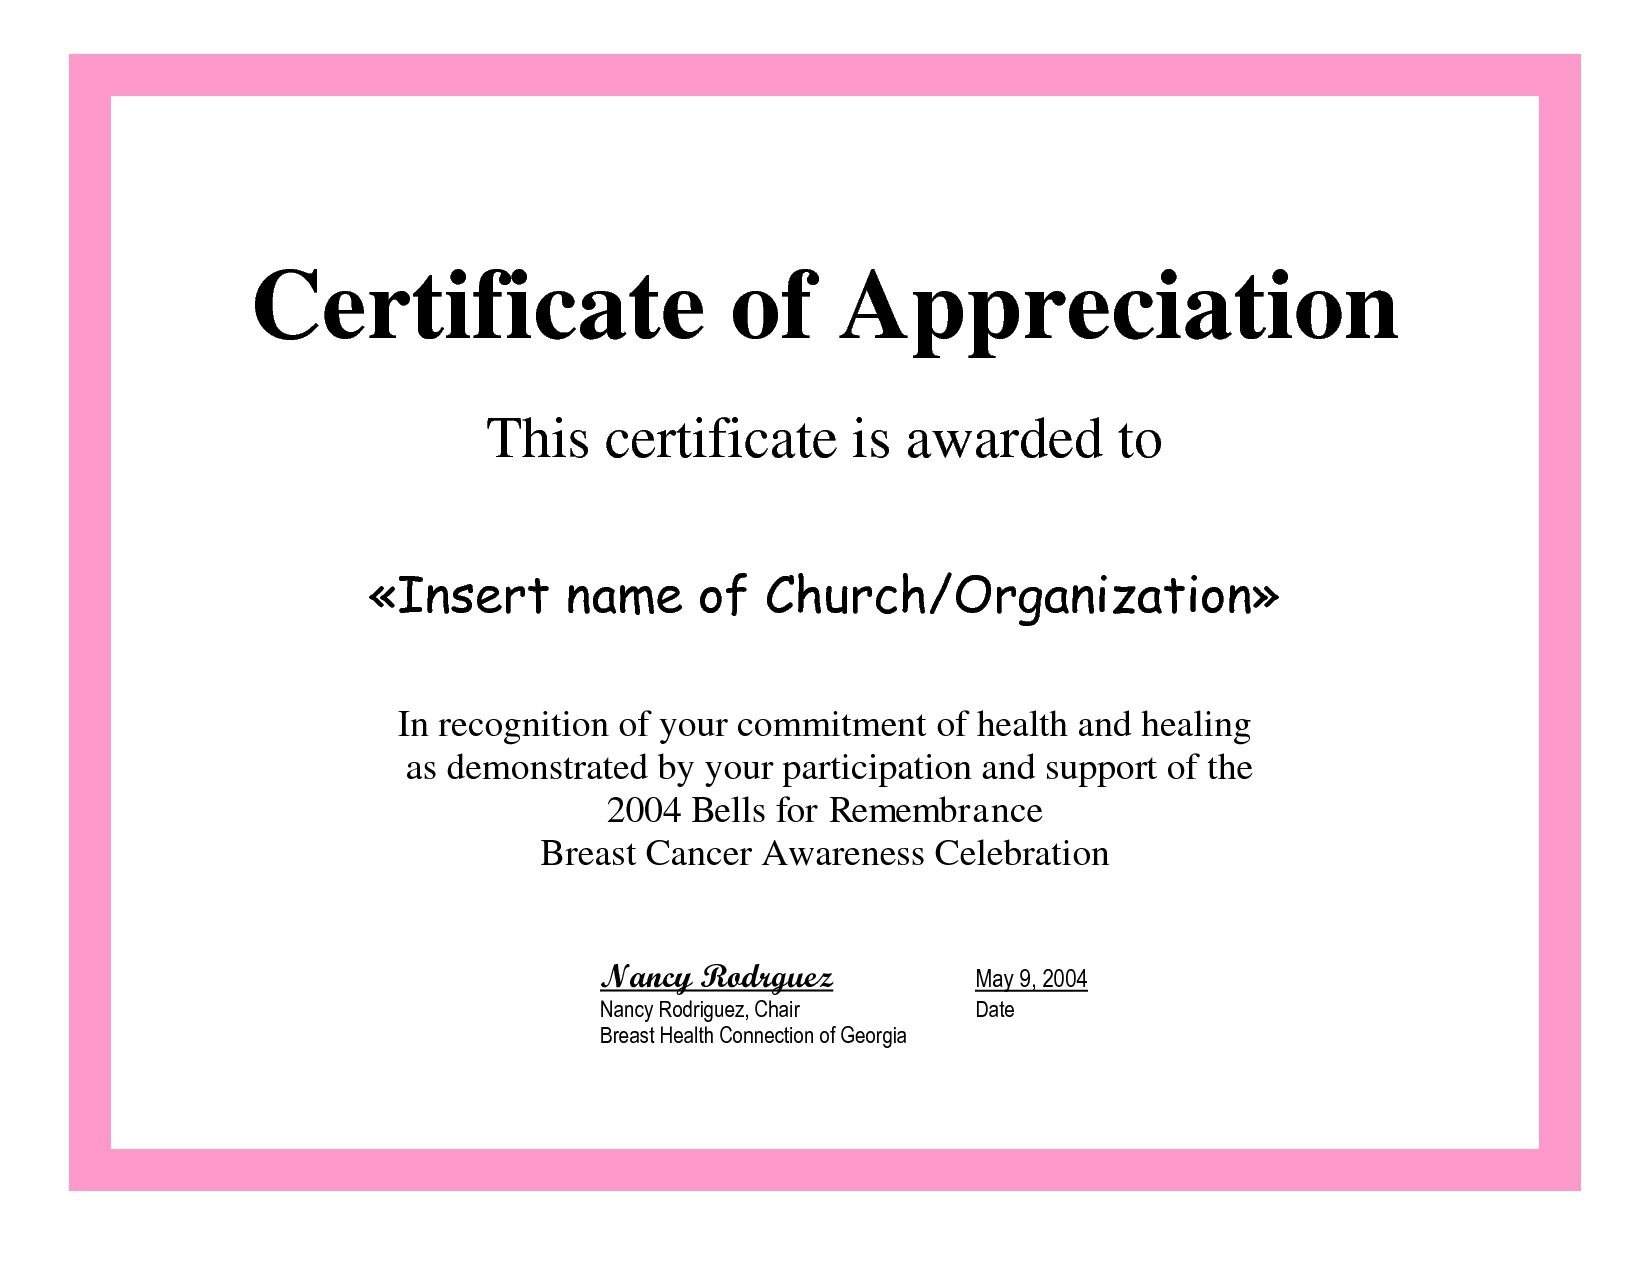 Employee Appreciation Certificate Template Free Recognition Within Recognition Of Service Certificate Template